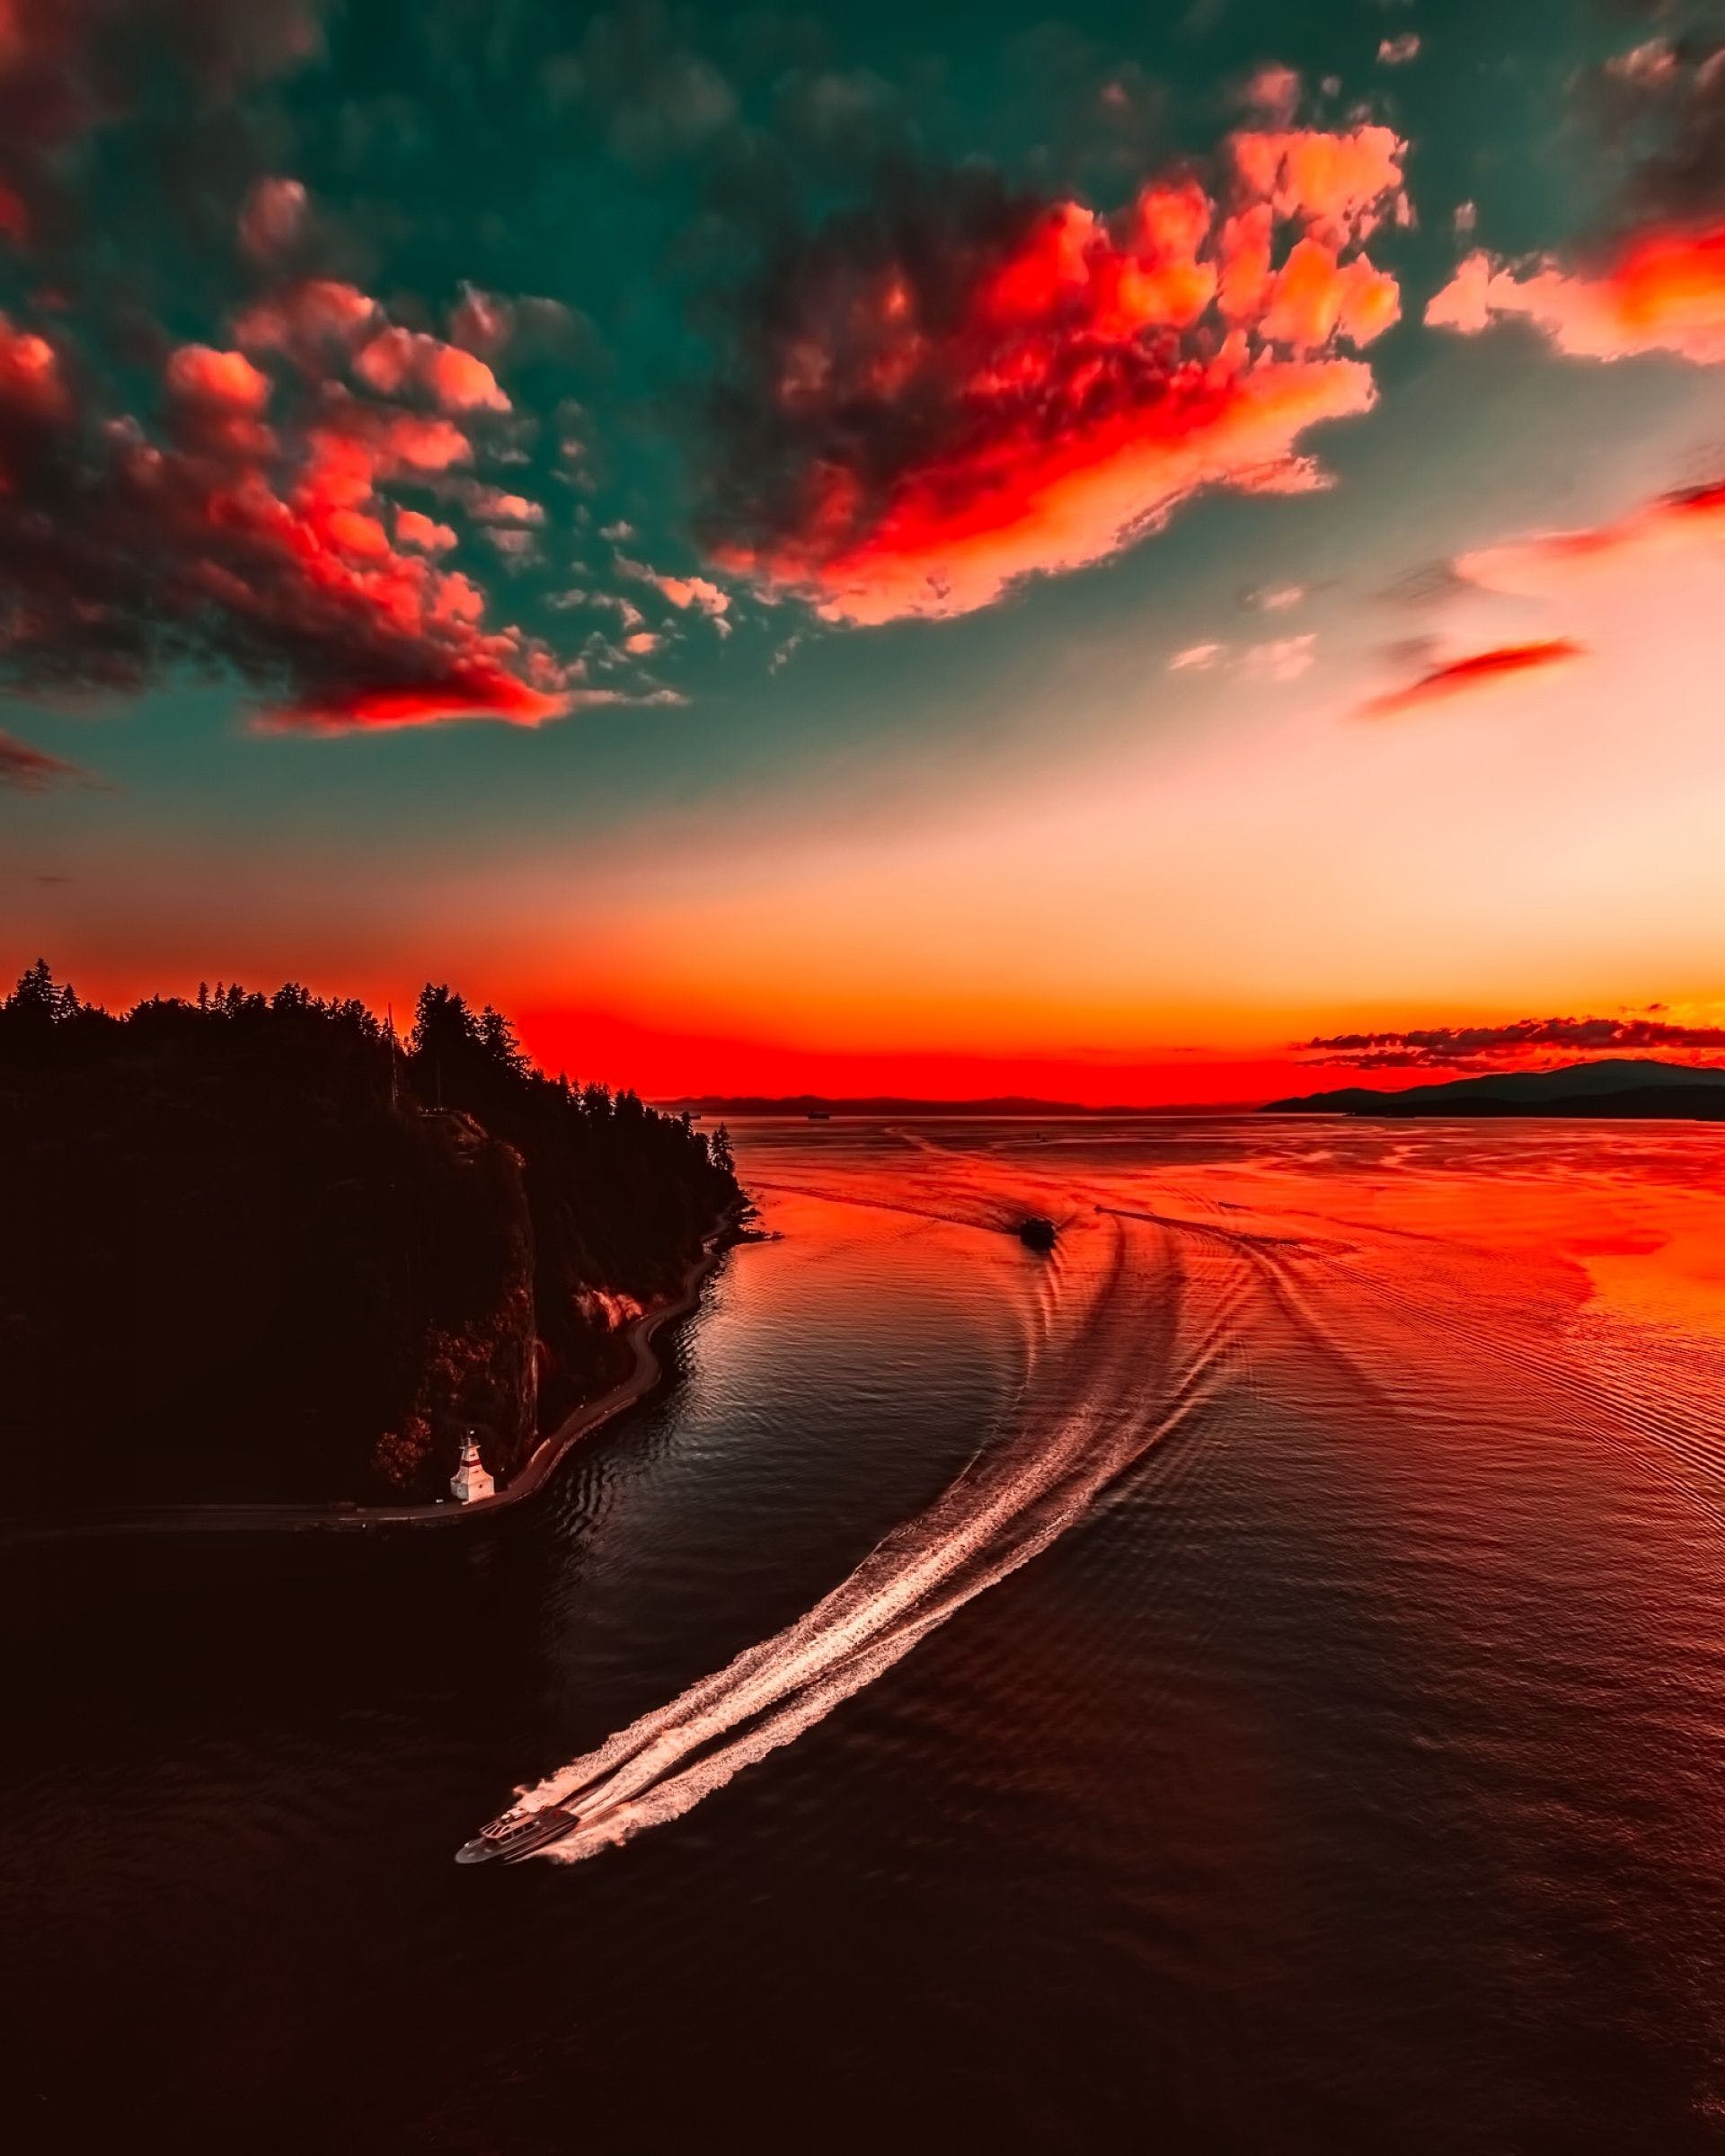 Sunset Sky Wallpapers